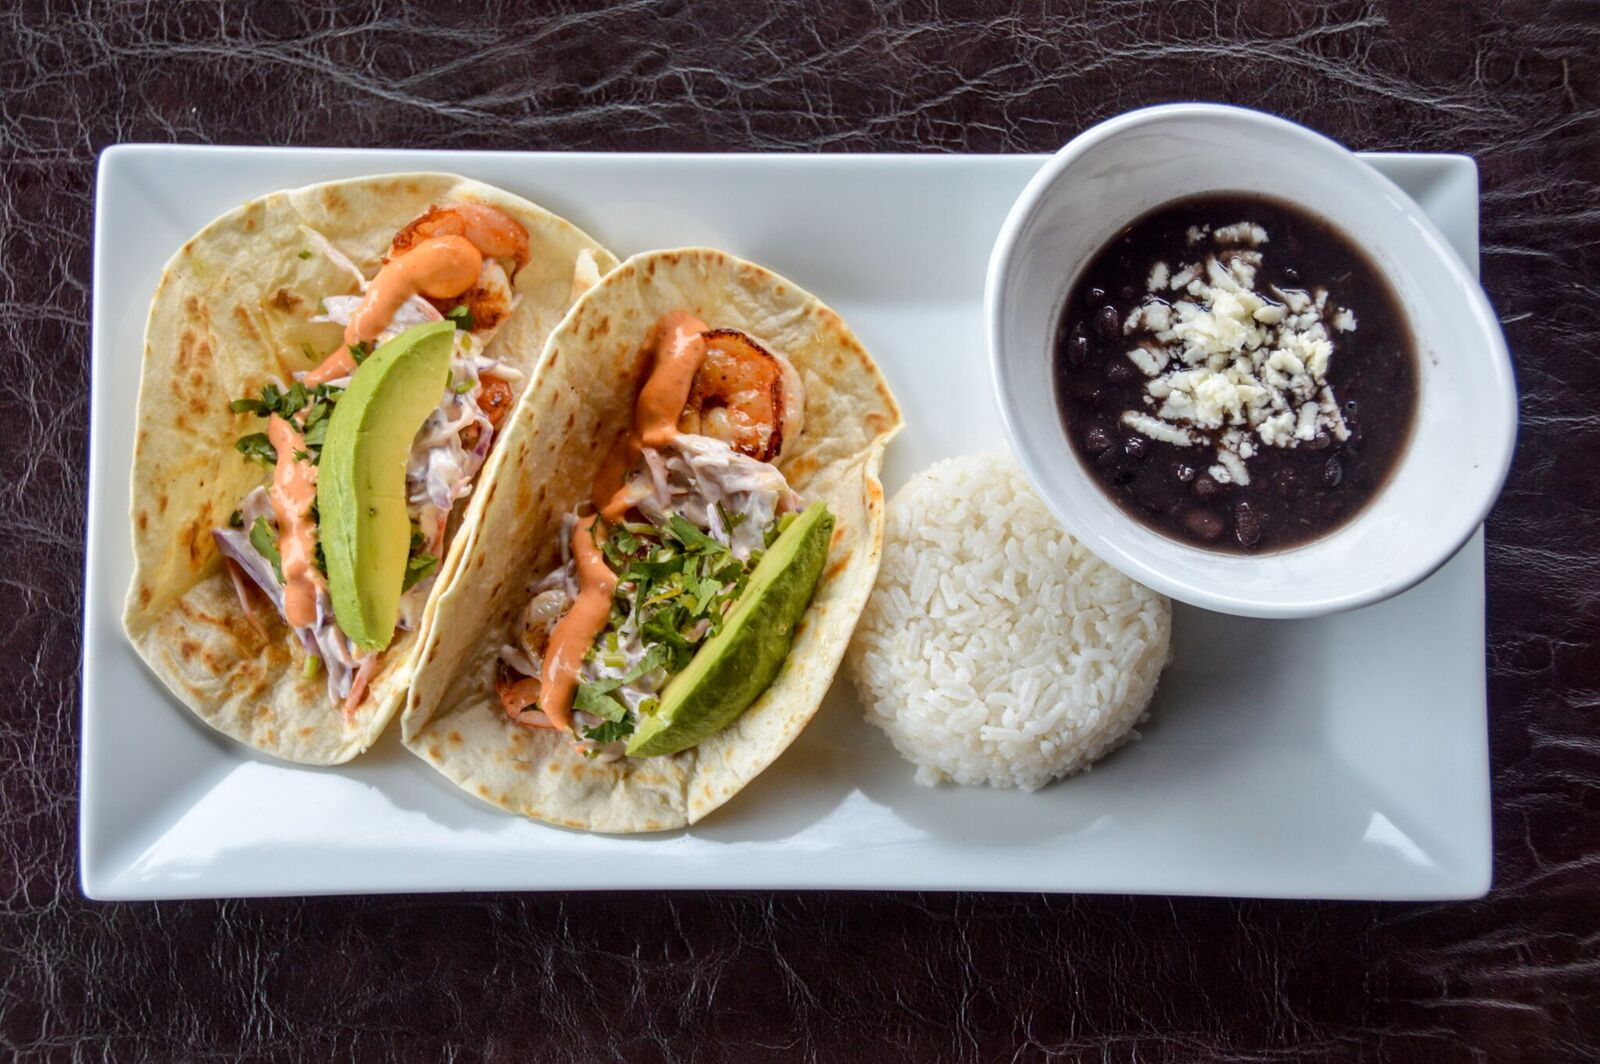 two tacos with shrimp and avocado with a side of rice and black beans